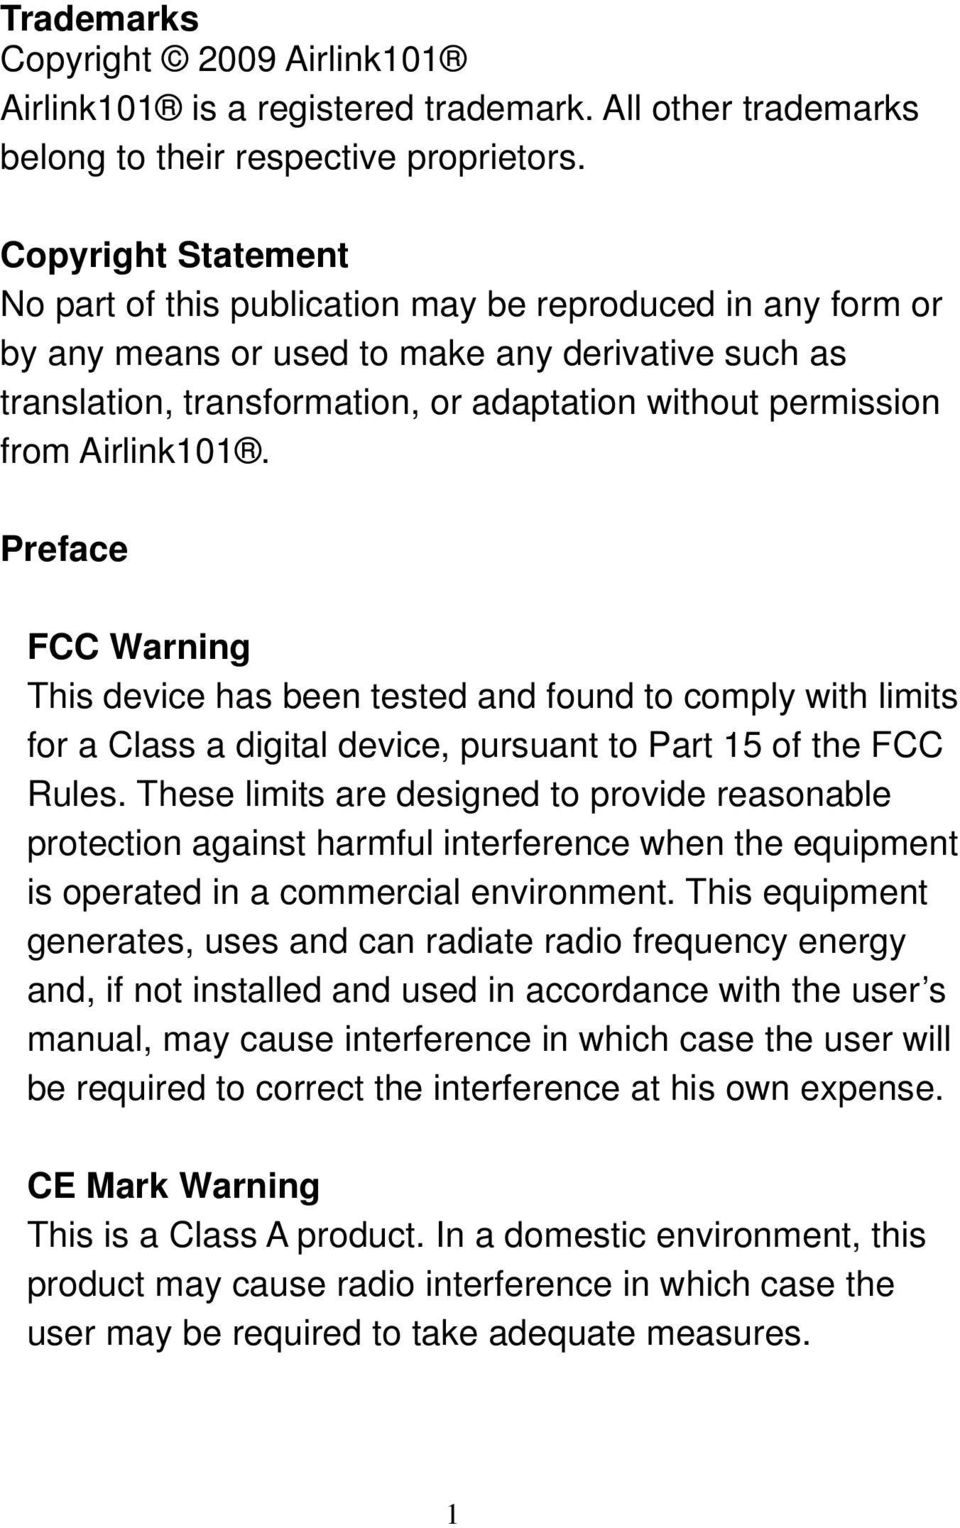 Airlink101. Preface FCC Warning This device has been tested and found to comply with limits for a Class a digital device, pursuant to Part 15 of the FCC Rules.